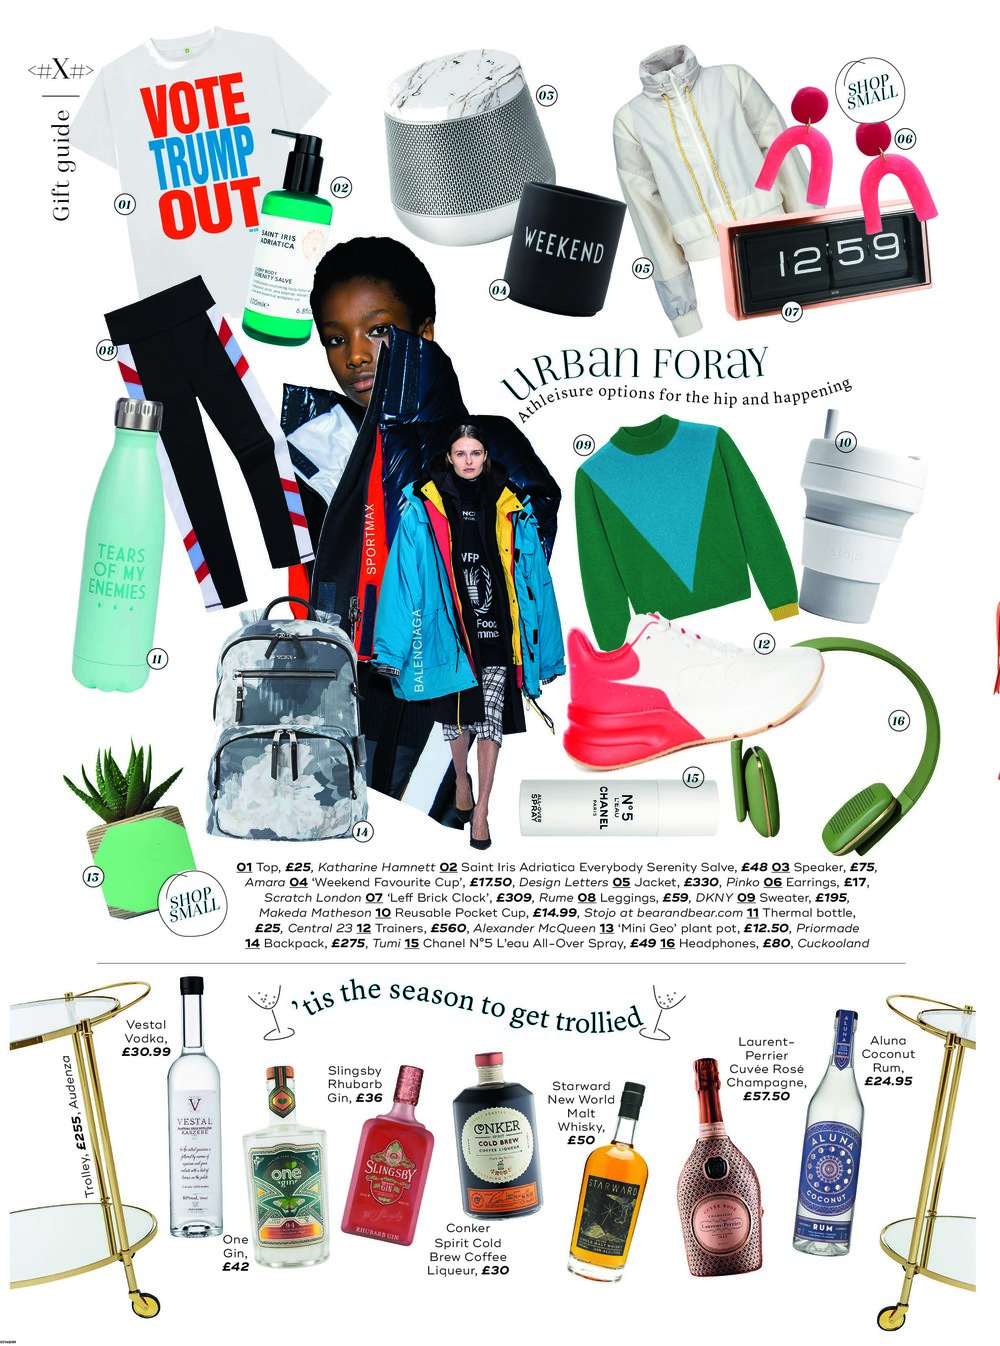 MARIE CLAIRE MAGAZINE - DECEMBER 2018 GIFT GUIDE